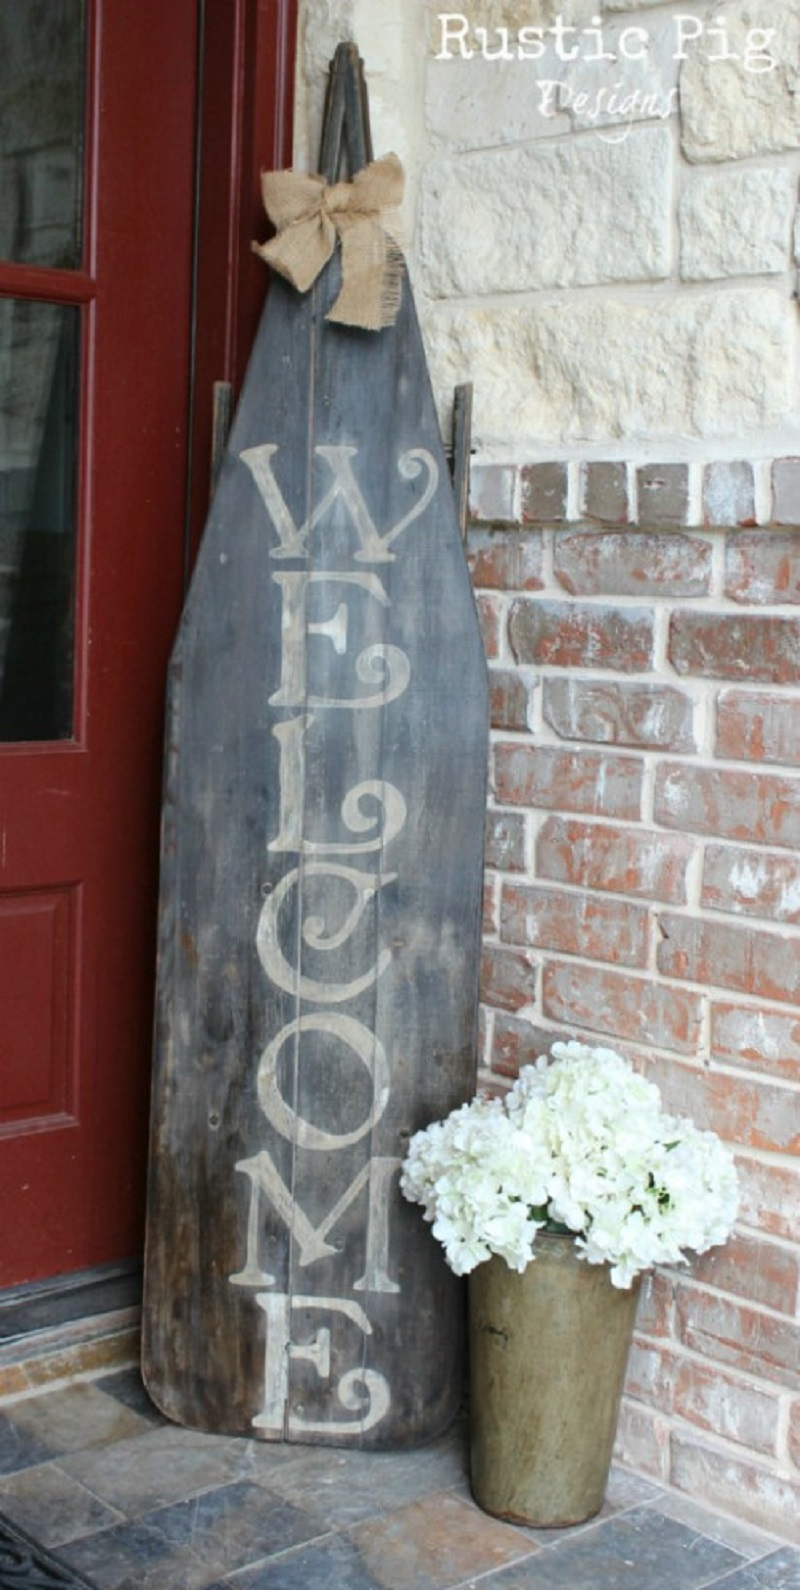 Old wooden ironing board welcome sign